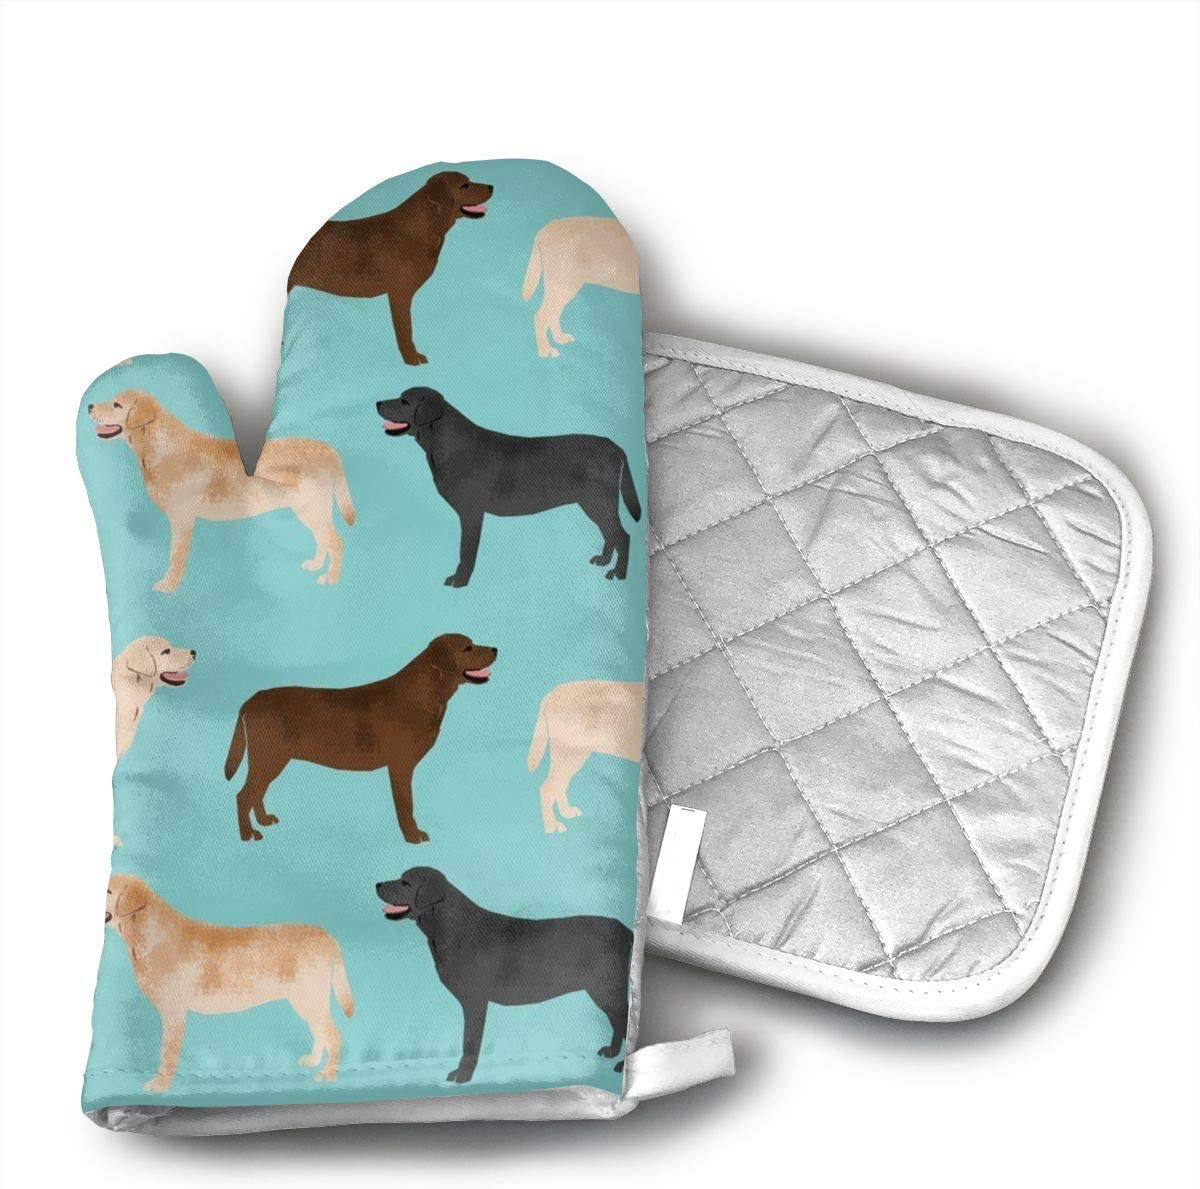 Wiqo9 Cute Labradors Yellow Chocolate Black Lab Pet Dogs Oven Mitts and Pot Holders Kitchen Mitten Cooking Gloves,Cooking, Baking, BBQ.